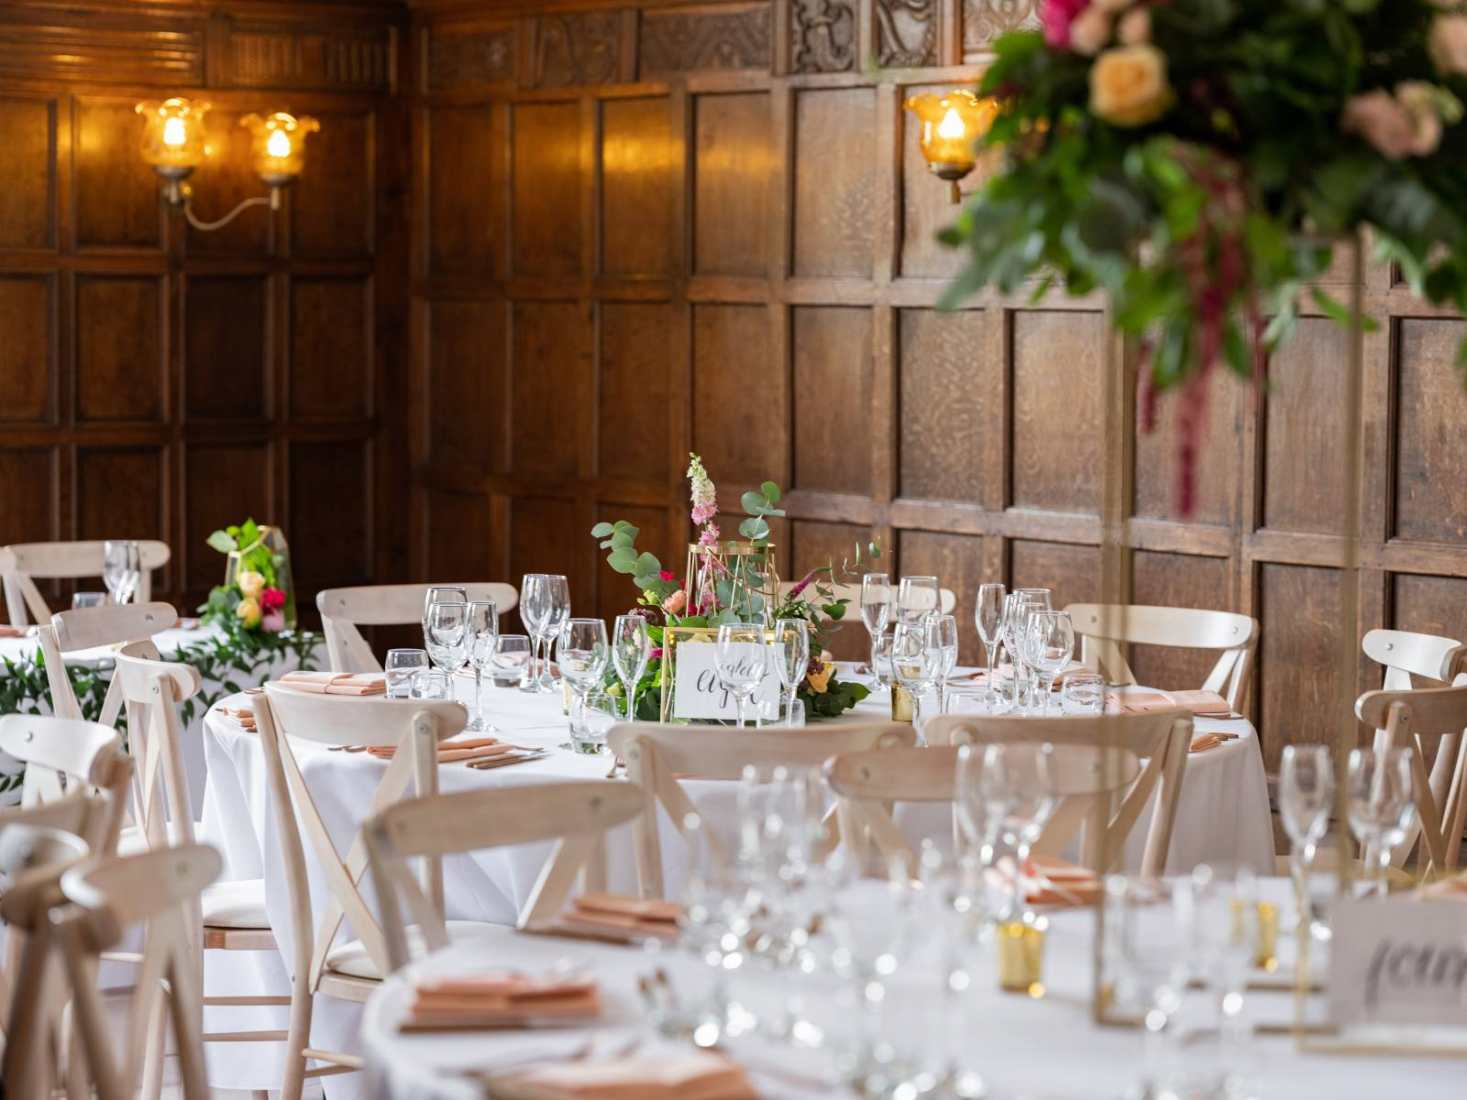 An oak panelled room set up for a wedding